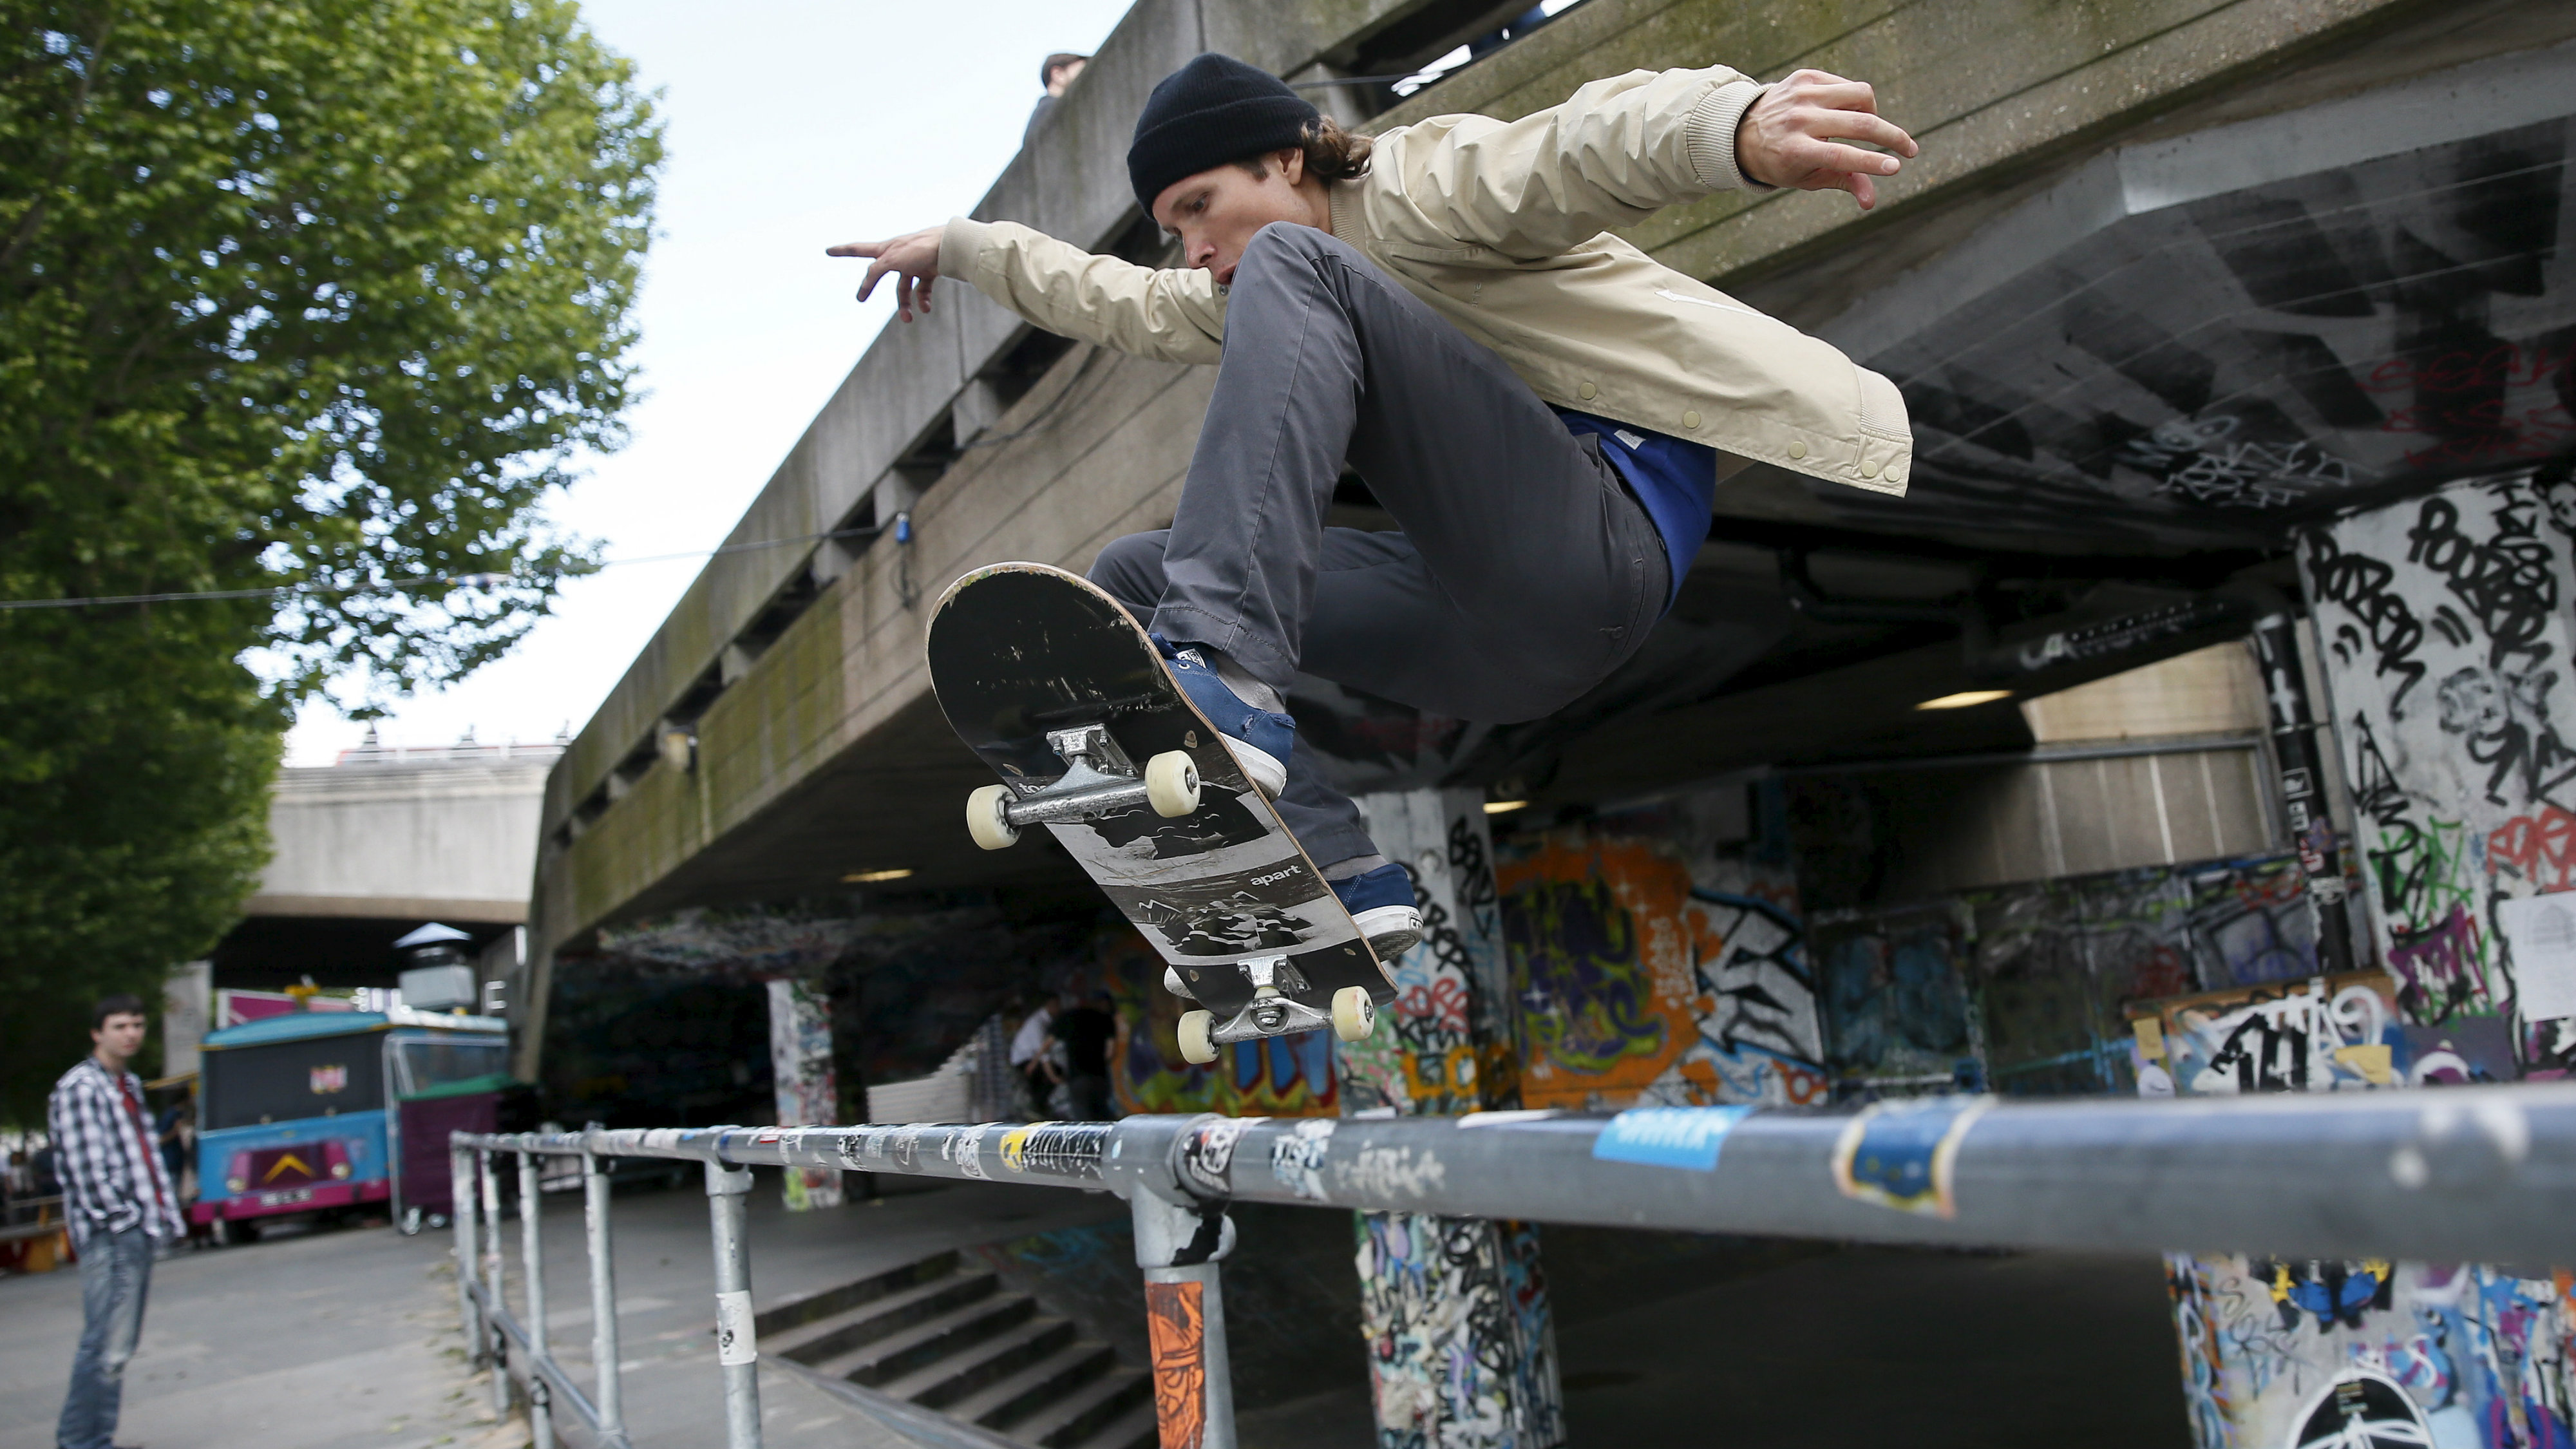 london skateboarder